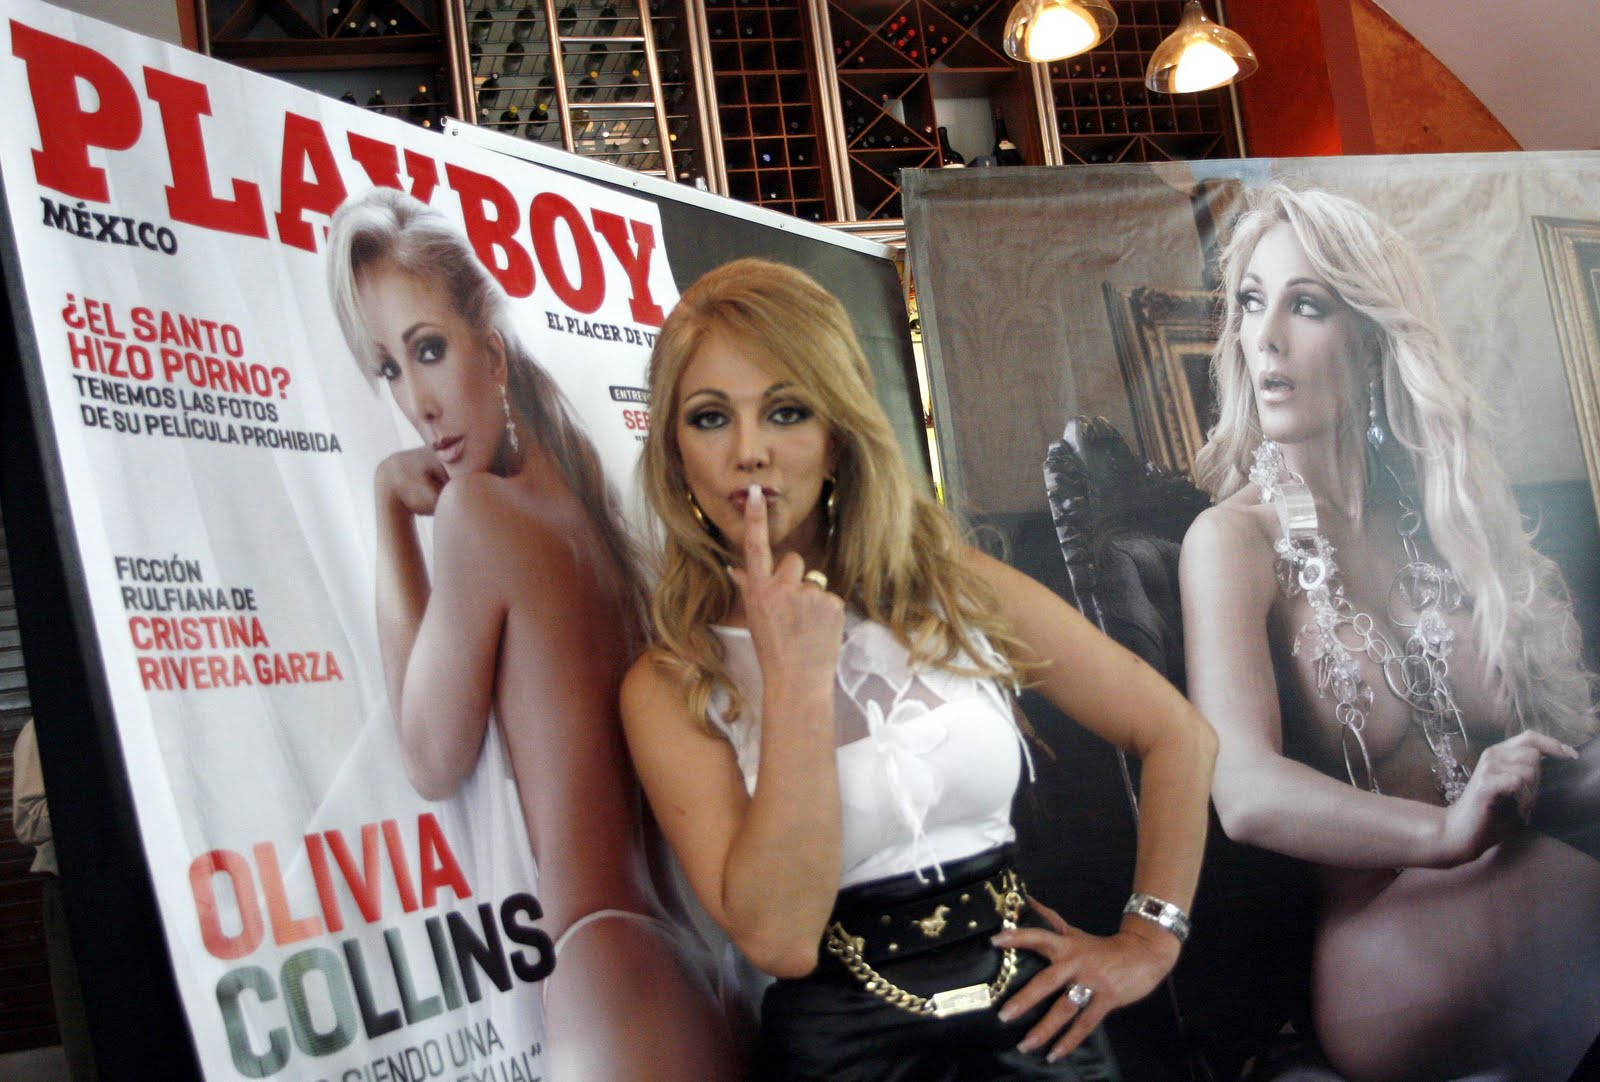 Olivia Collins Play Boy 2010